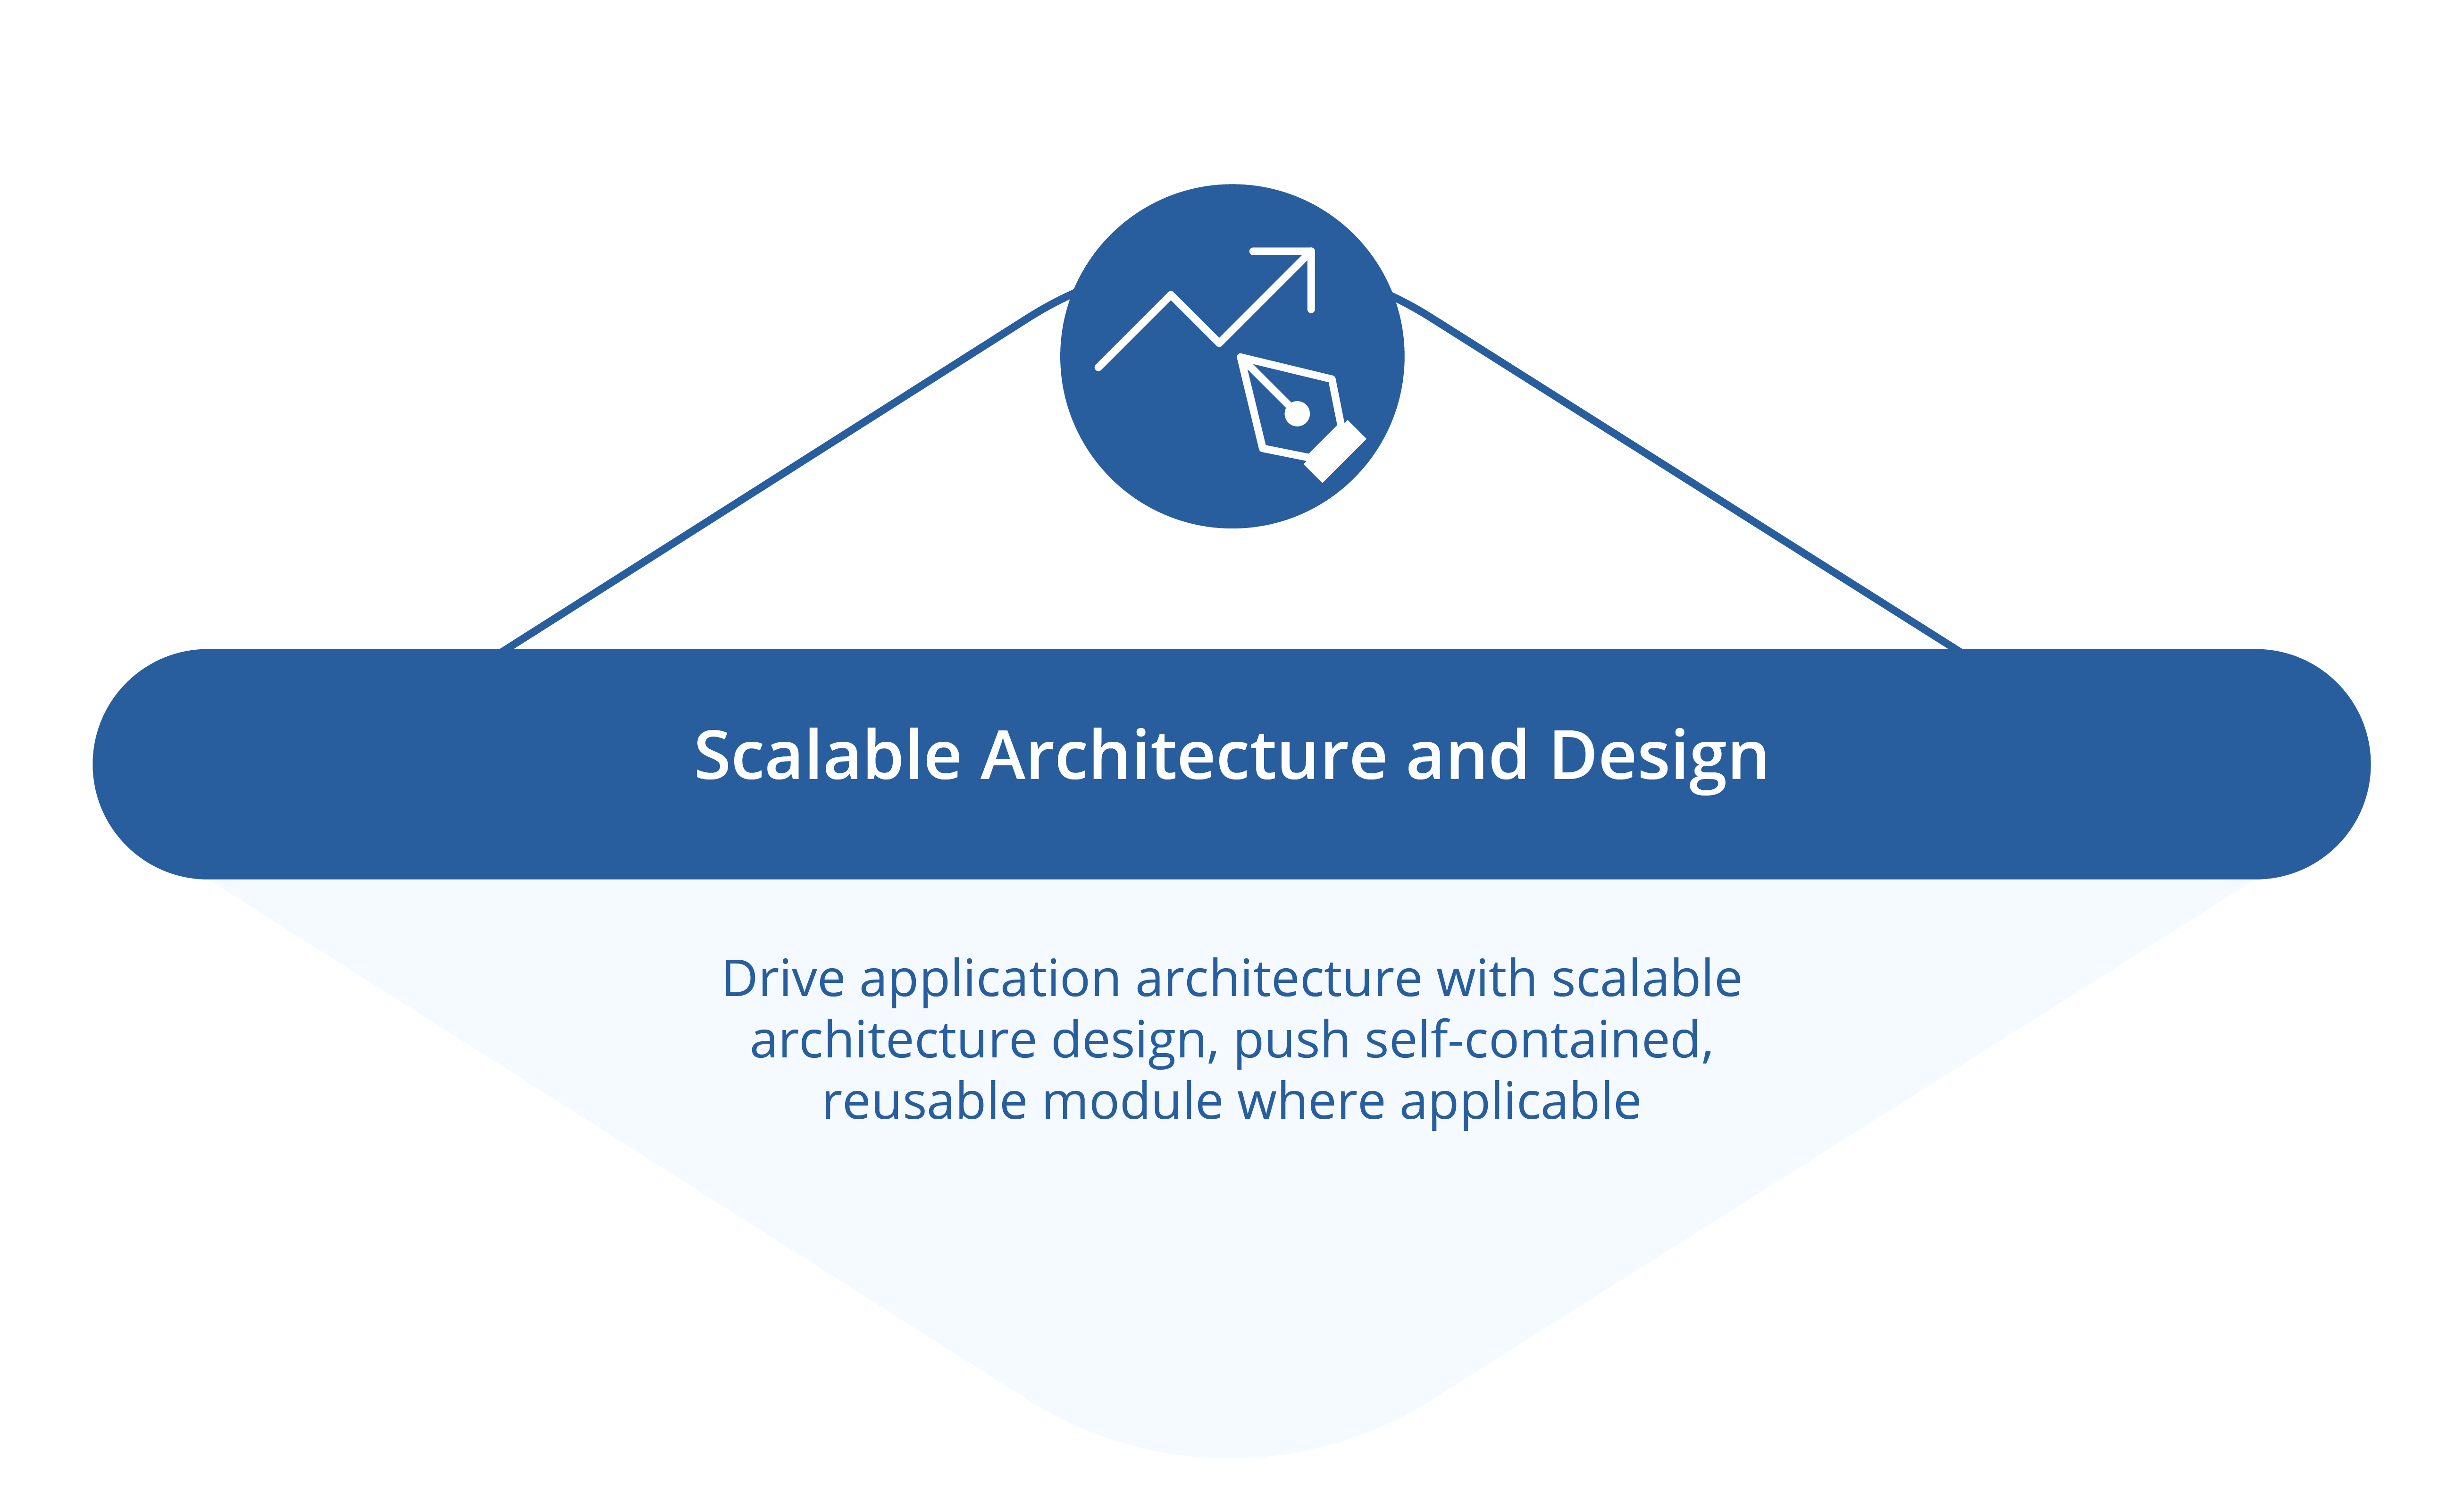 Scalable Architecture and Design